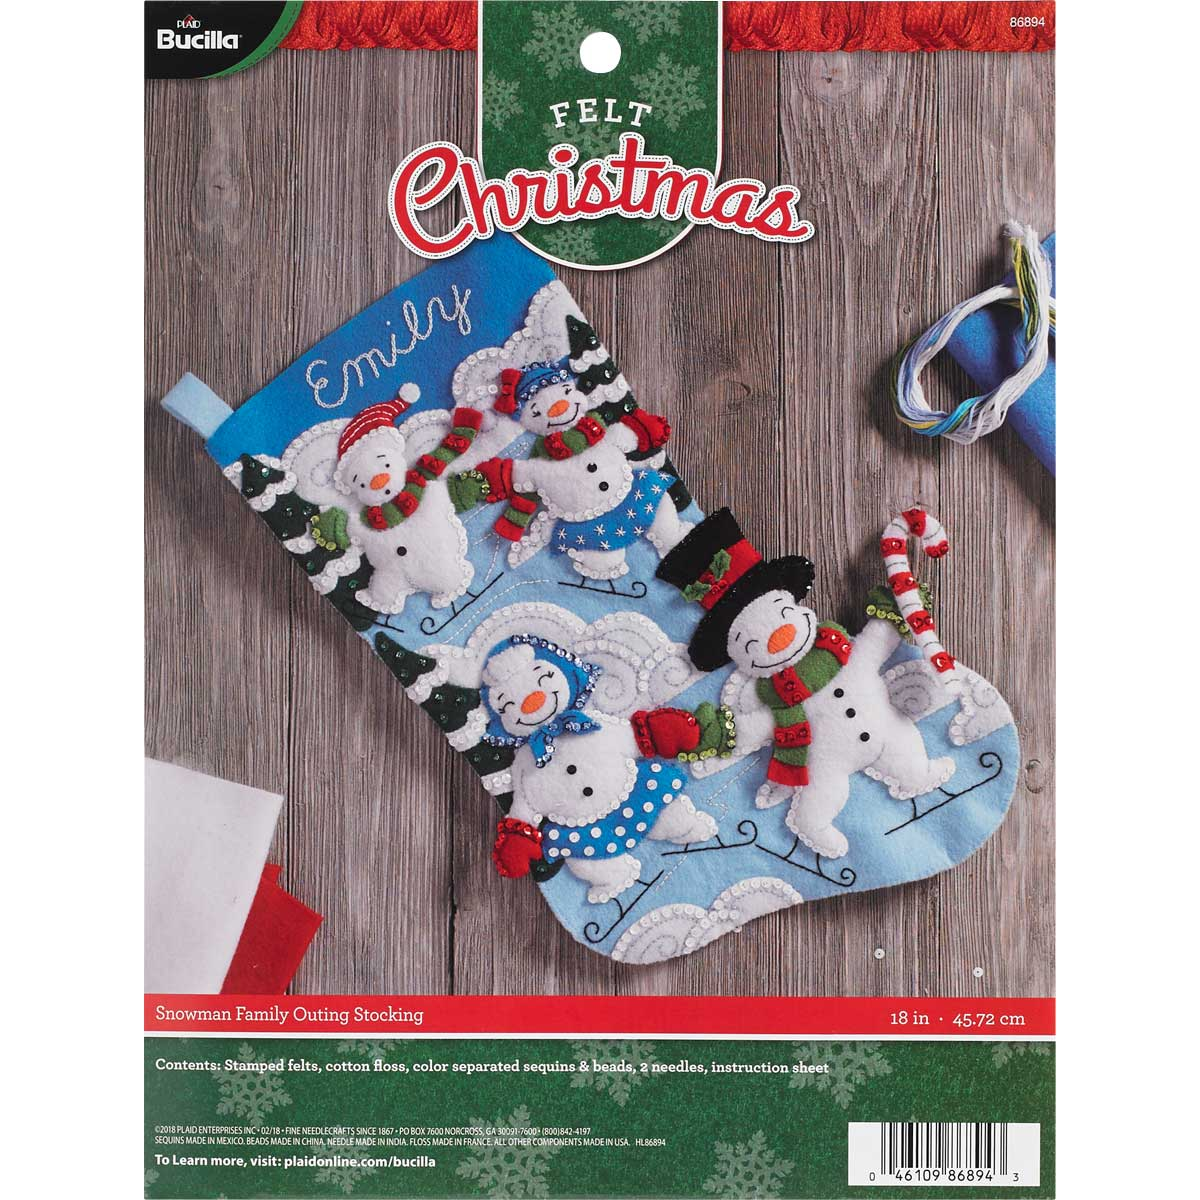 Bucilla ® Seasonal - Felt - Stocking Kits - Snowman Family Outing